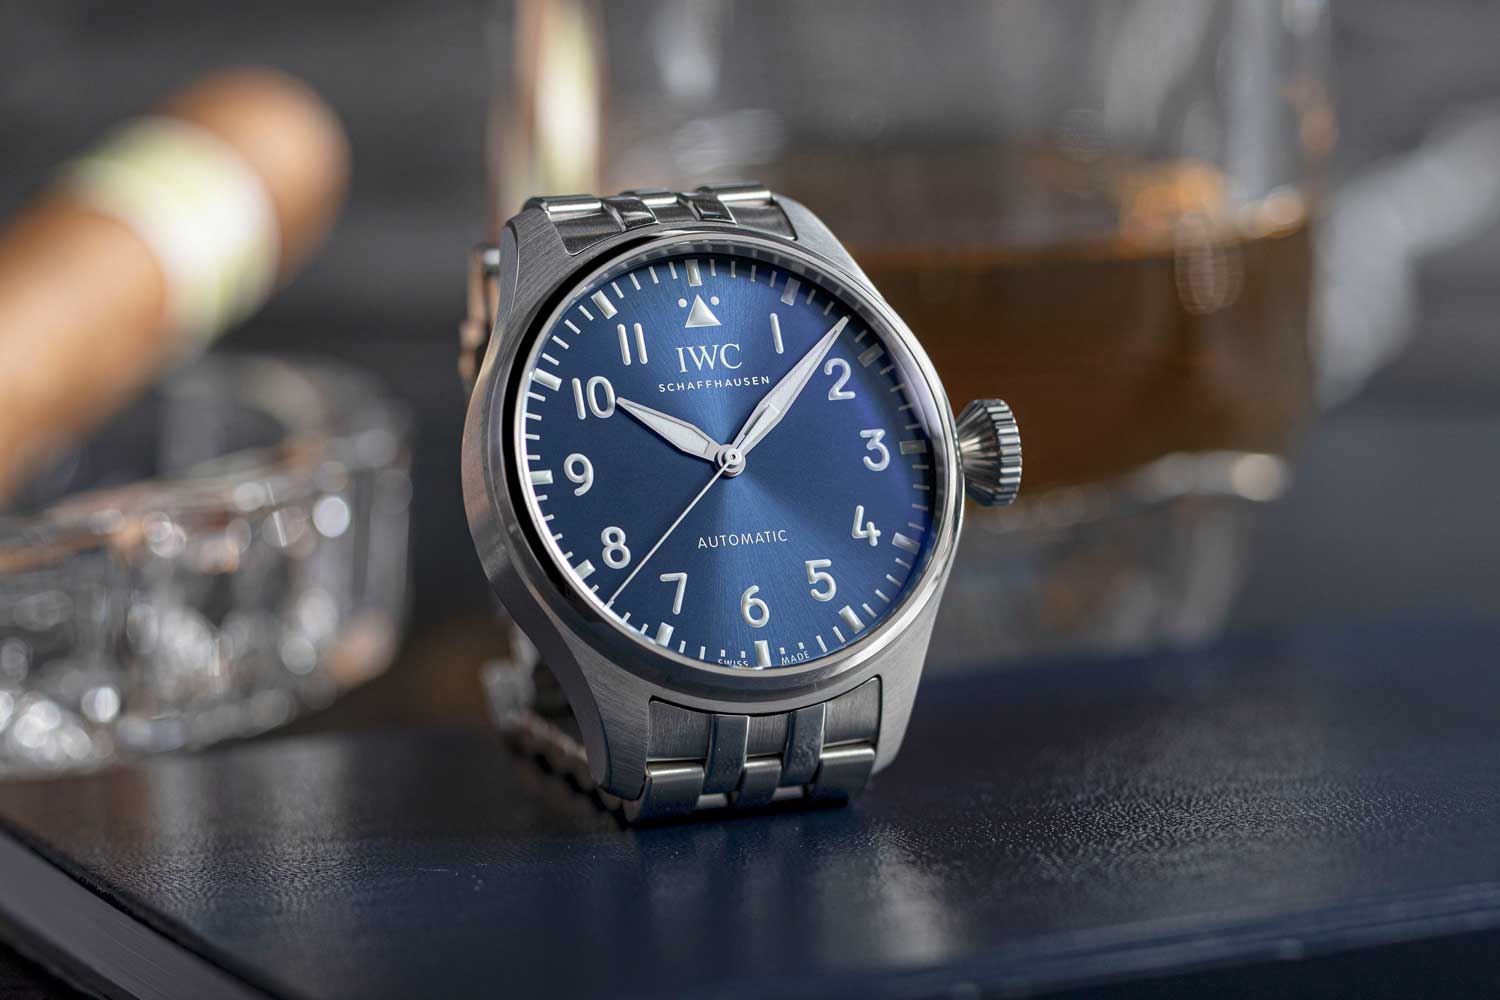 The watch's wide hour and minute hands and the slender seconds hand are rhodium-plated for high legibility against the dark dial. (© Revolution)